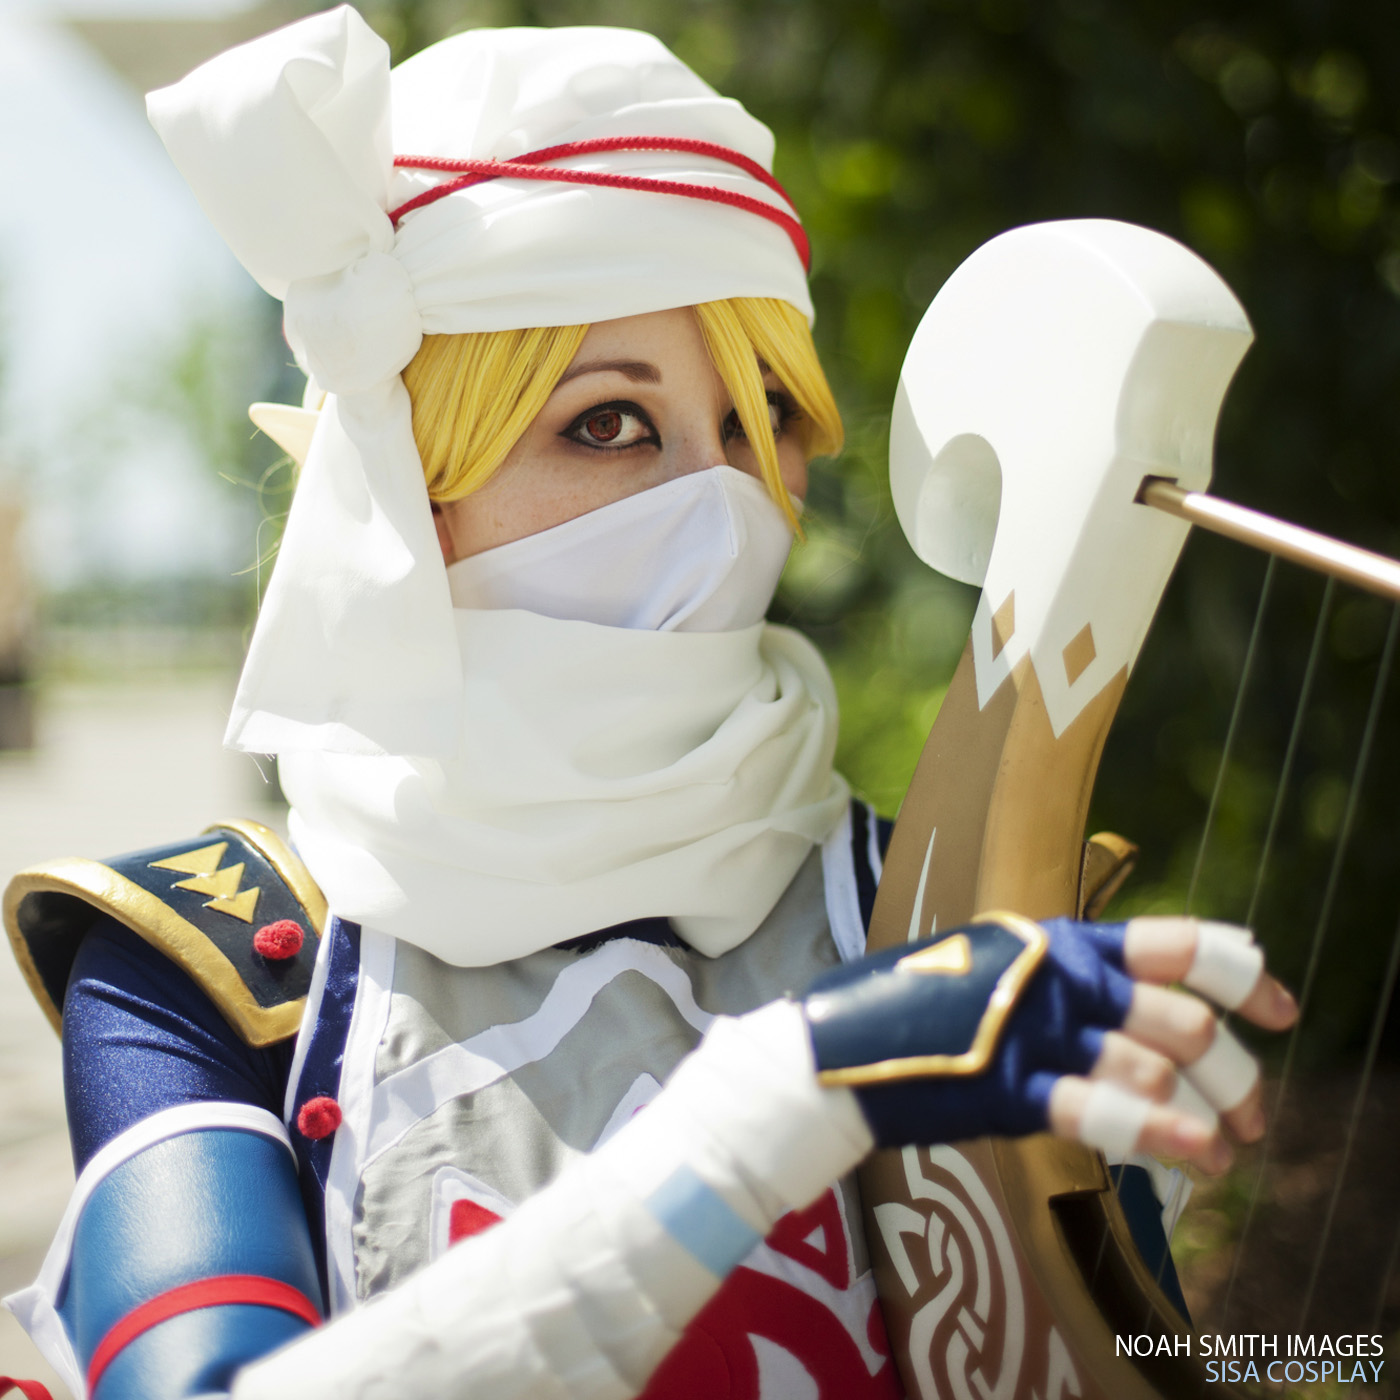 Noah-Smith-Sisa-Cosplay-Sheik-5